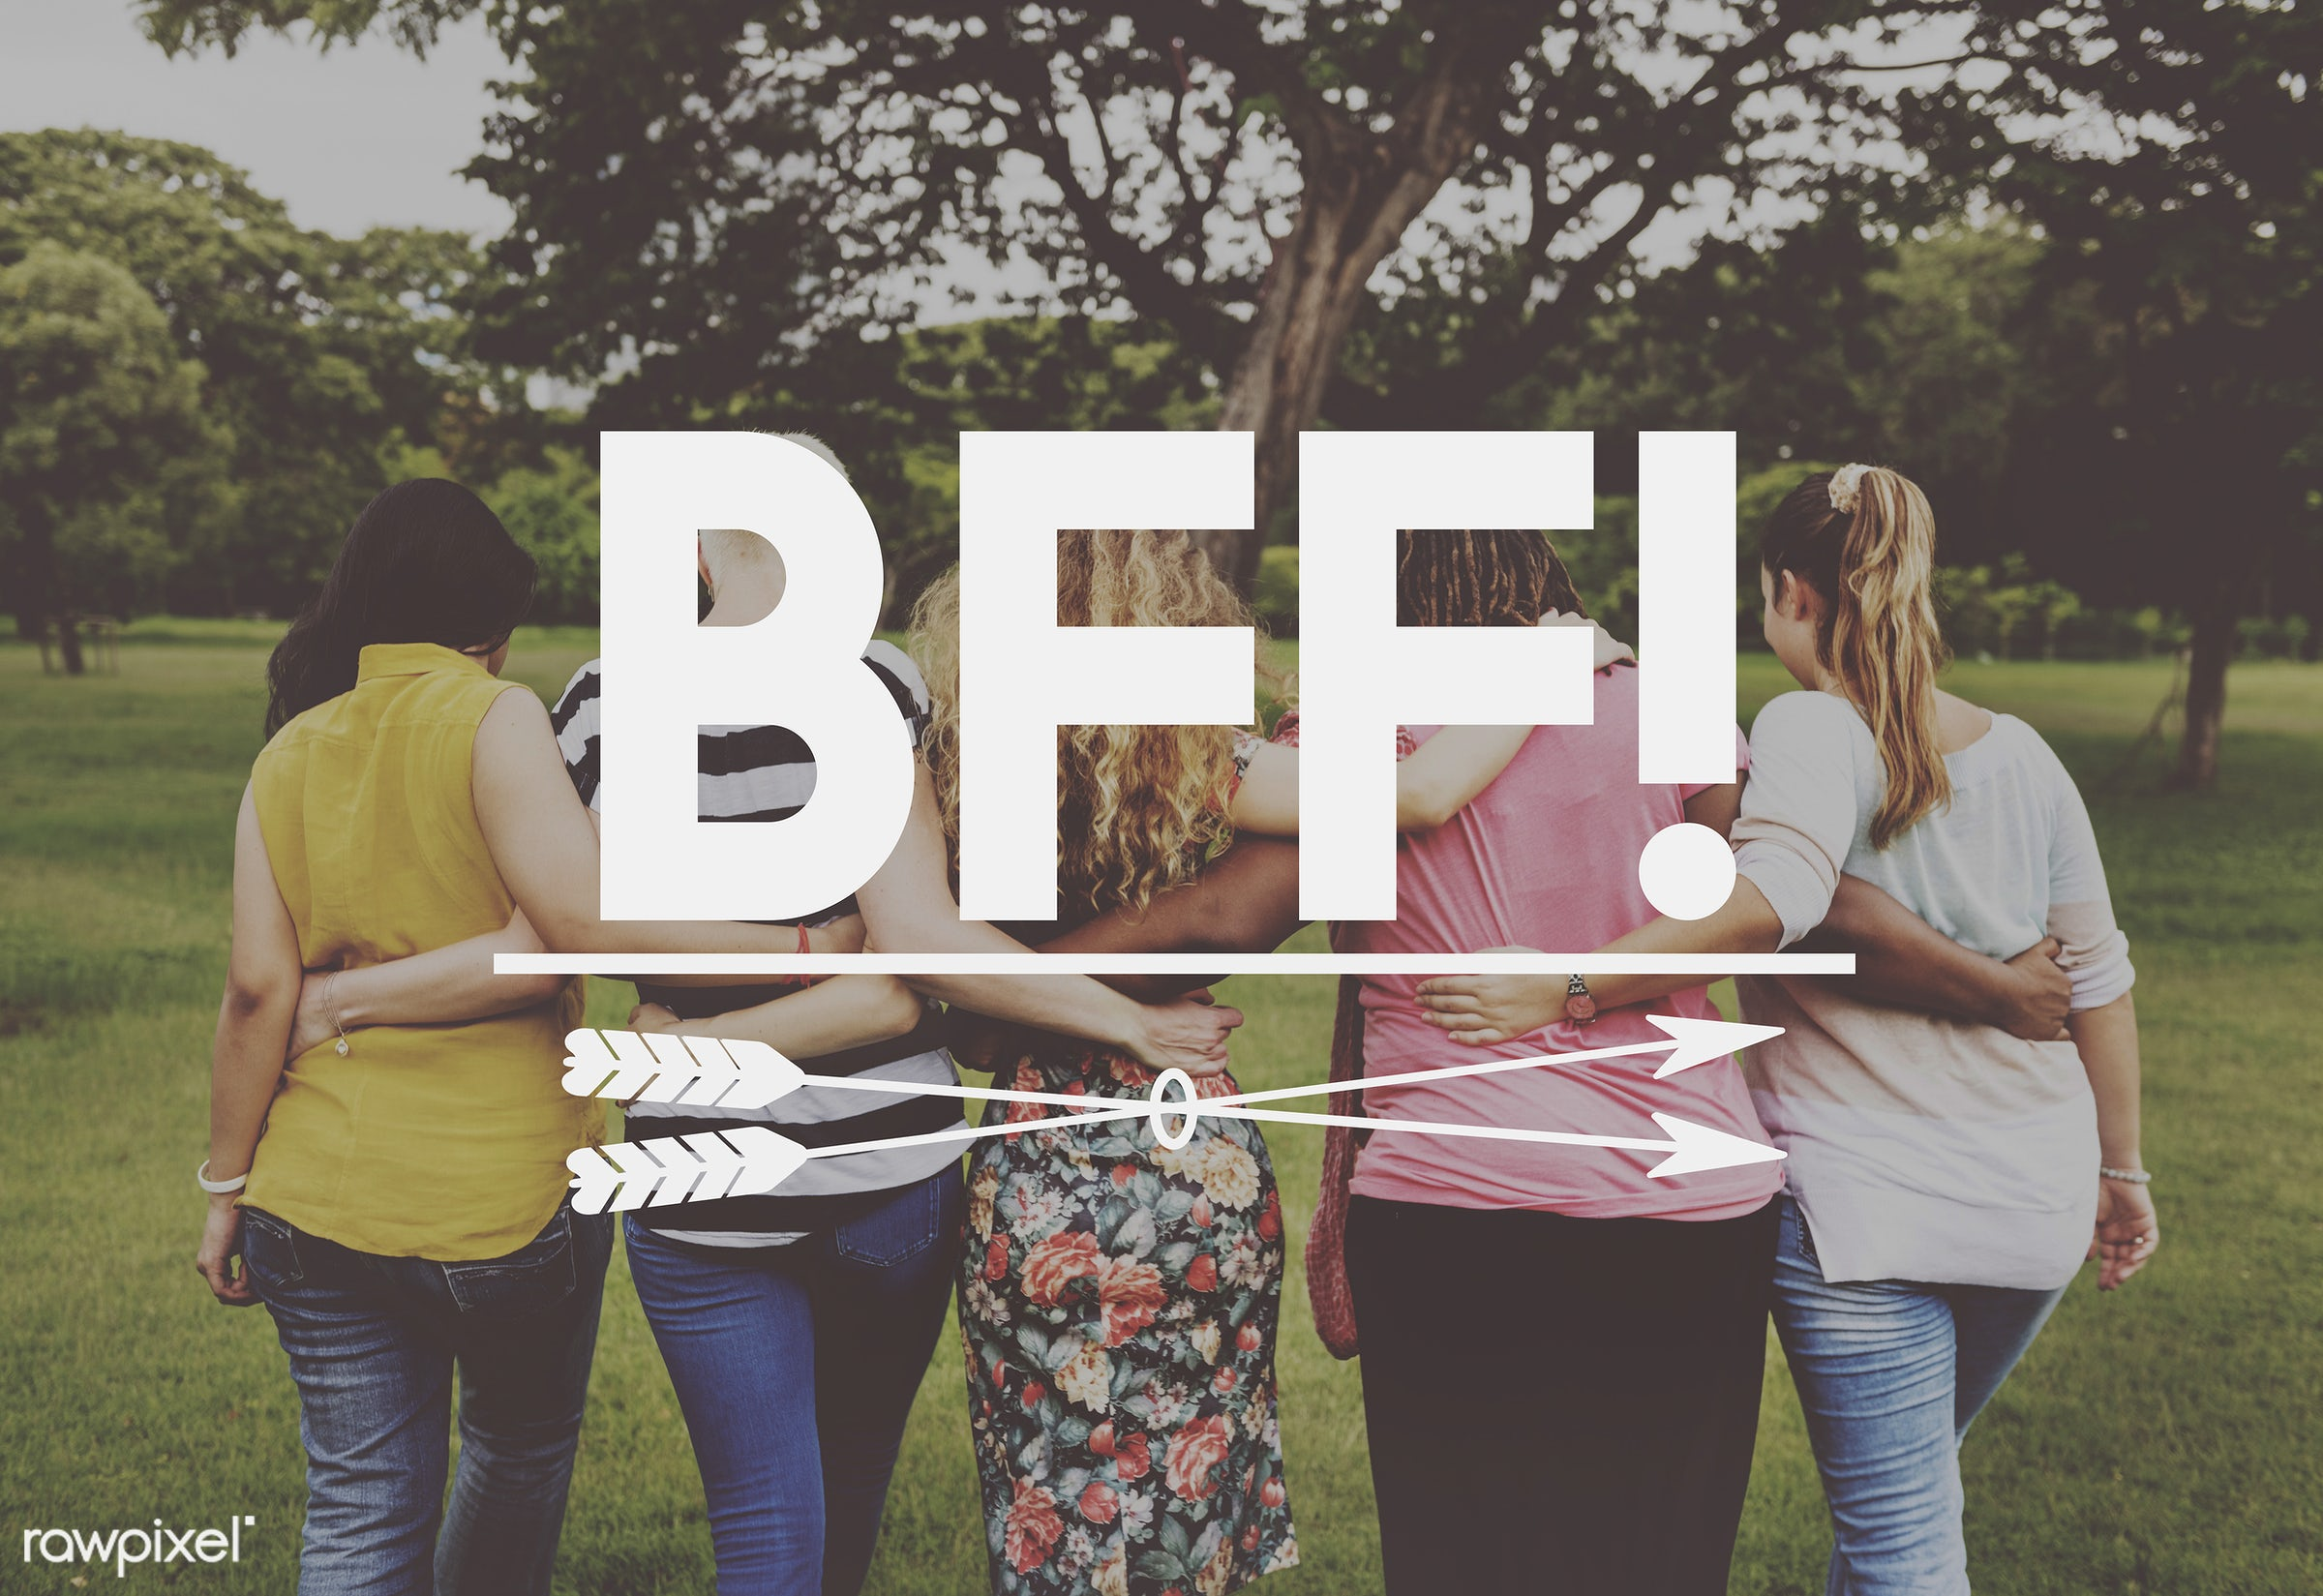 bff, adult, african american, air, back, brand, care, caucasian, cheerful, community, cooperation, diversity, enjoyment,...